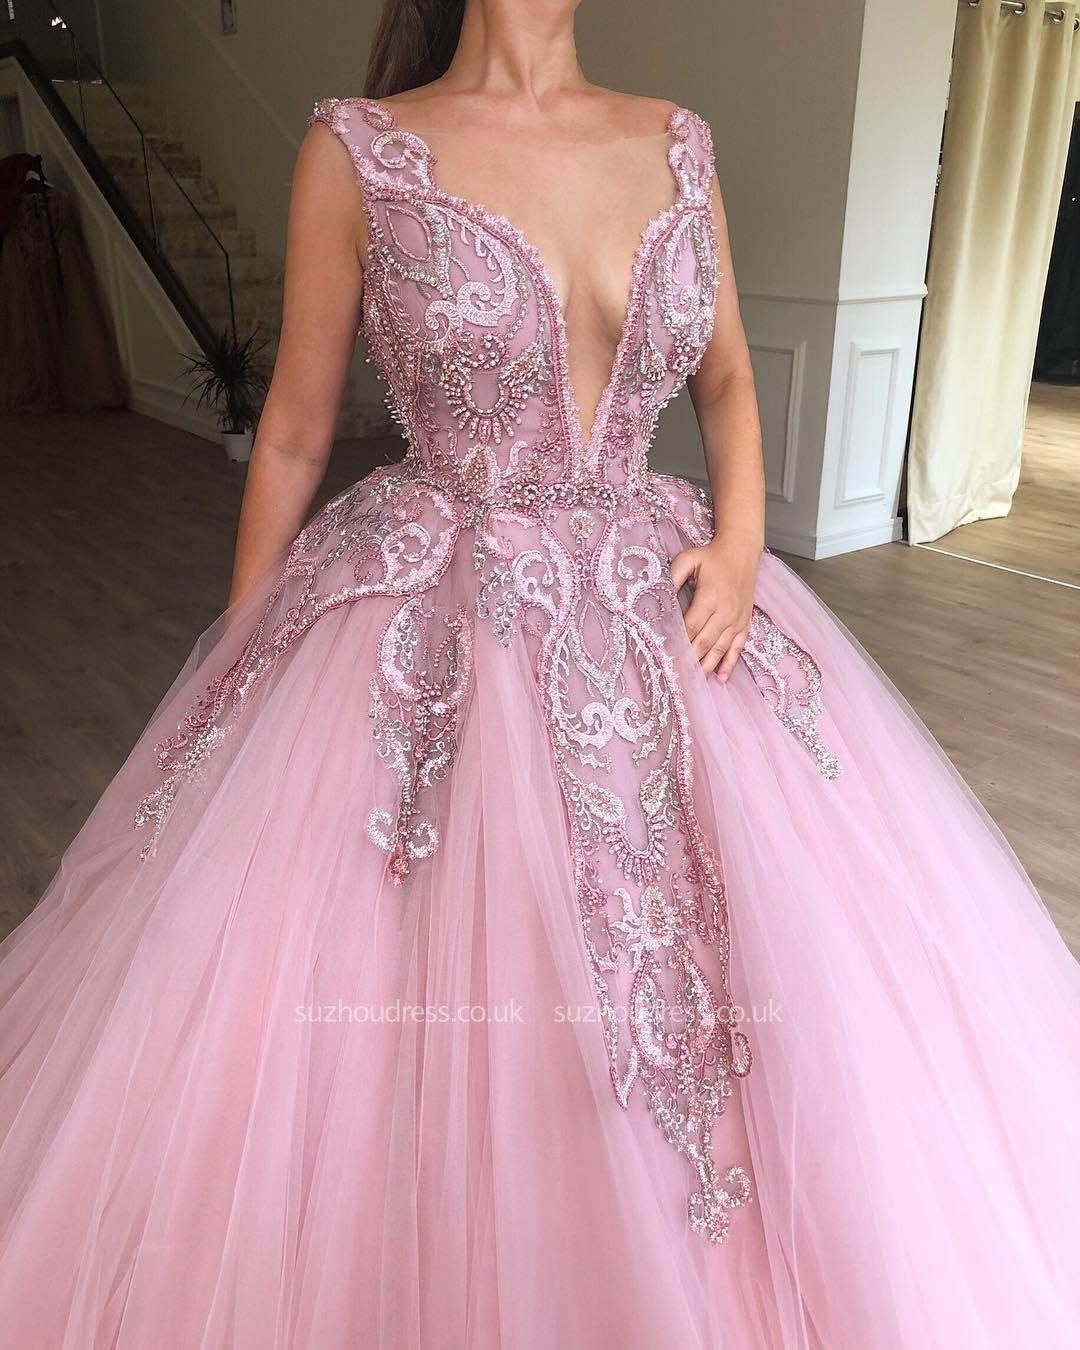 Beautiful Pink Puffy Deep V Neck Sleeveless Applique Evening Dresses Online New Styles Pink Ball Gown Ball Gowns Prom Dresses Lace